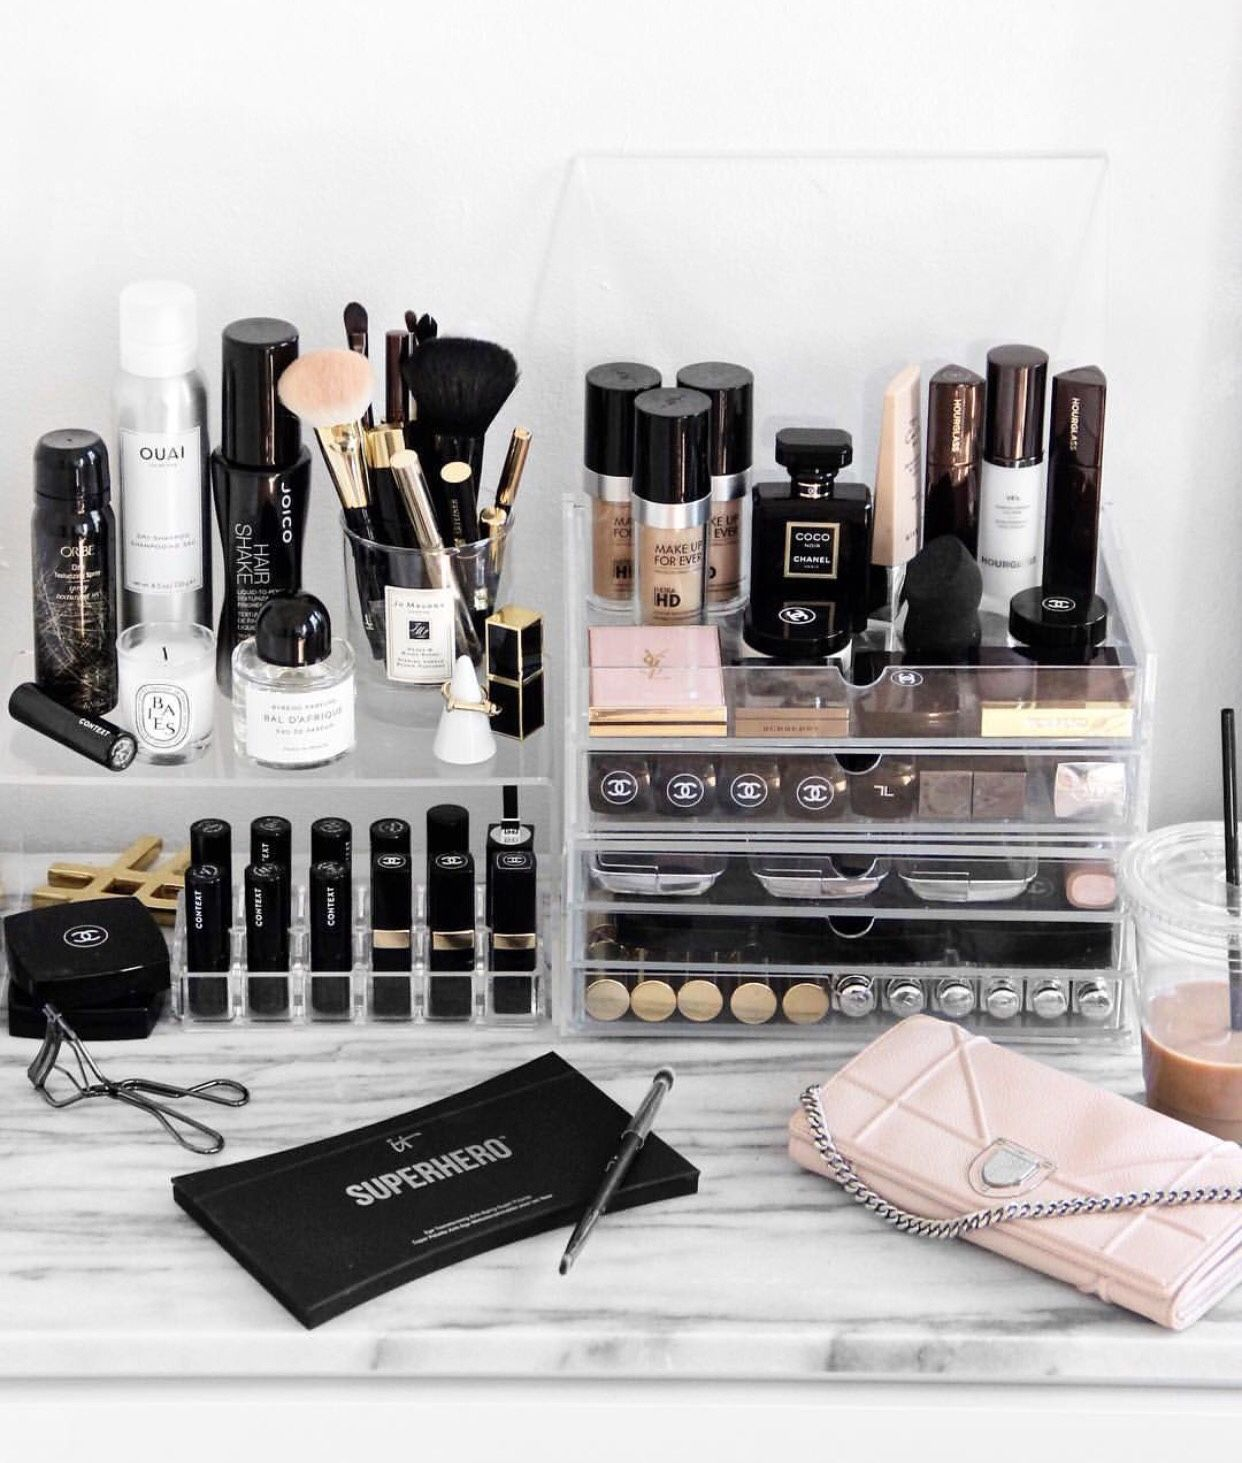 Best Makeup Products for Acne Prone Skin 3 Best Makeup Products for Acne-Prone Skin